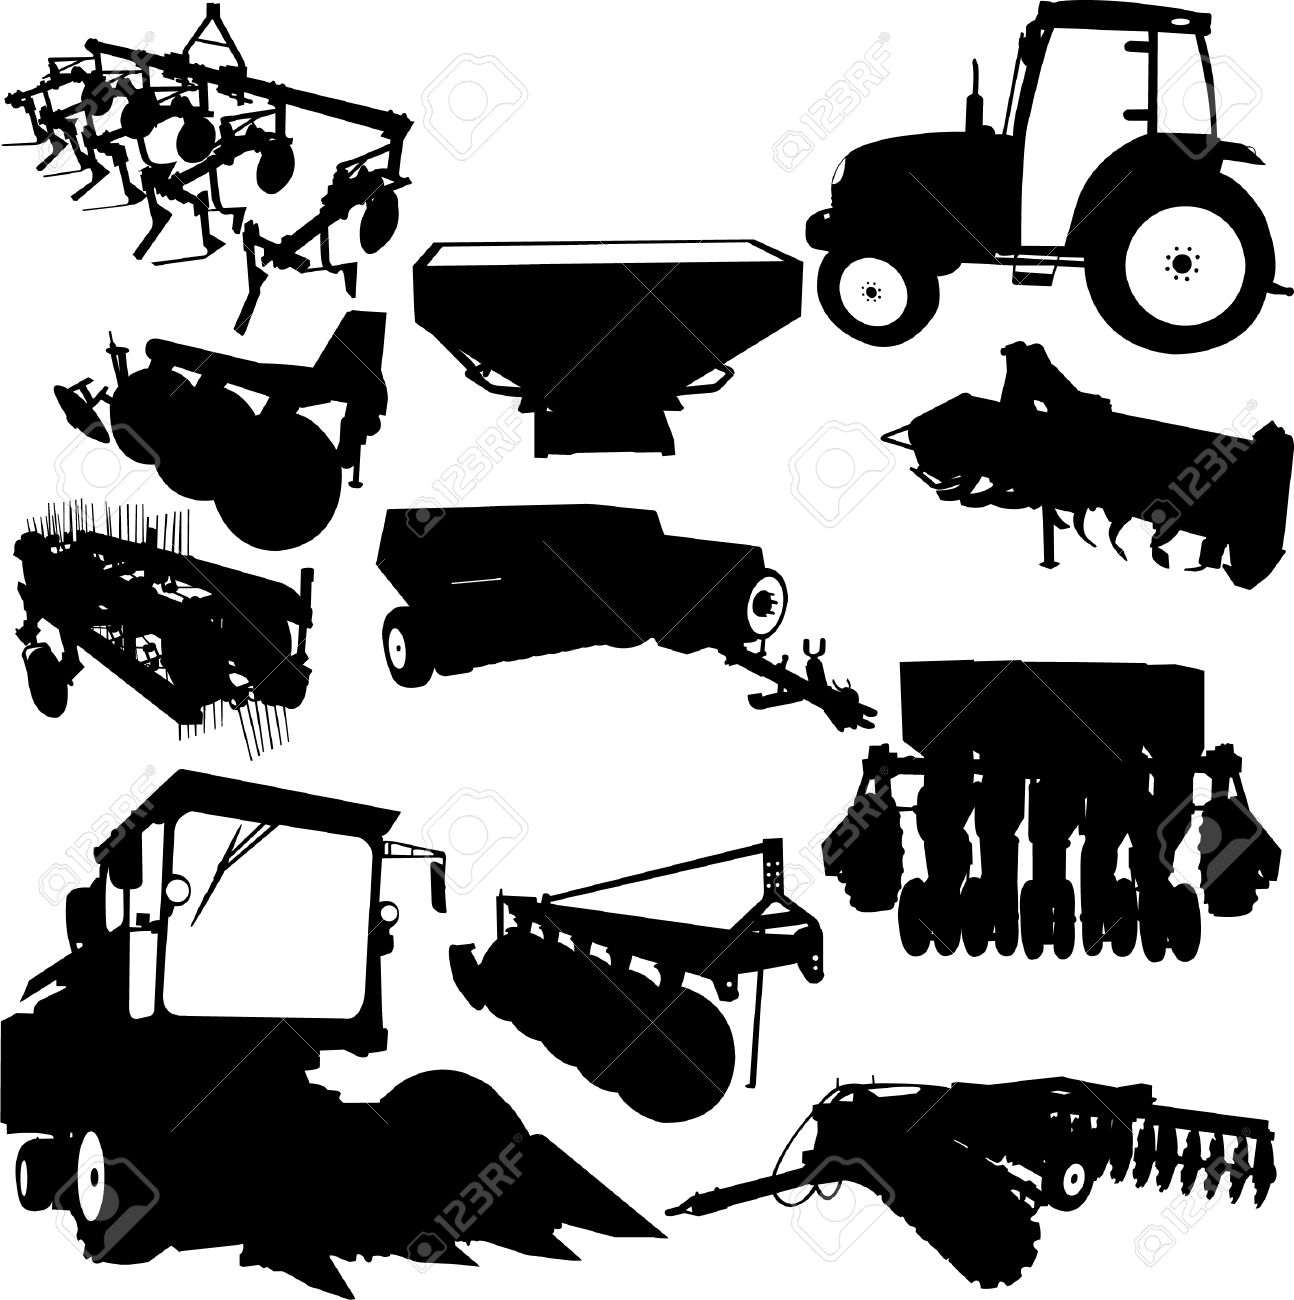 Farm machine clipart - Clipground for Camera Equipment Clipart  113lpg